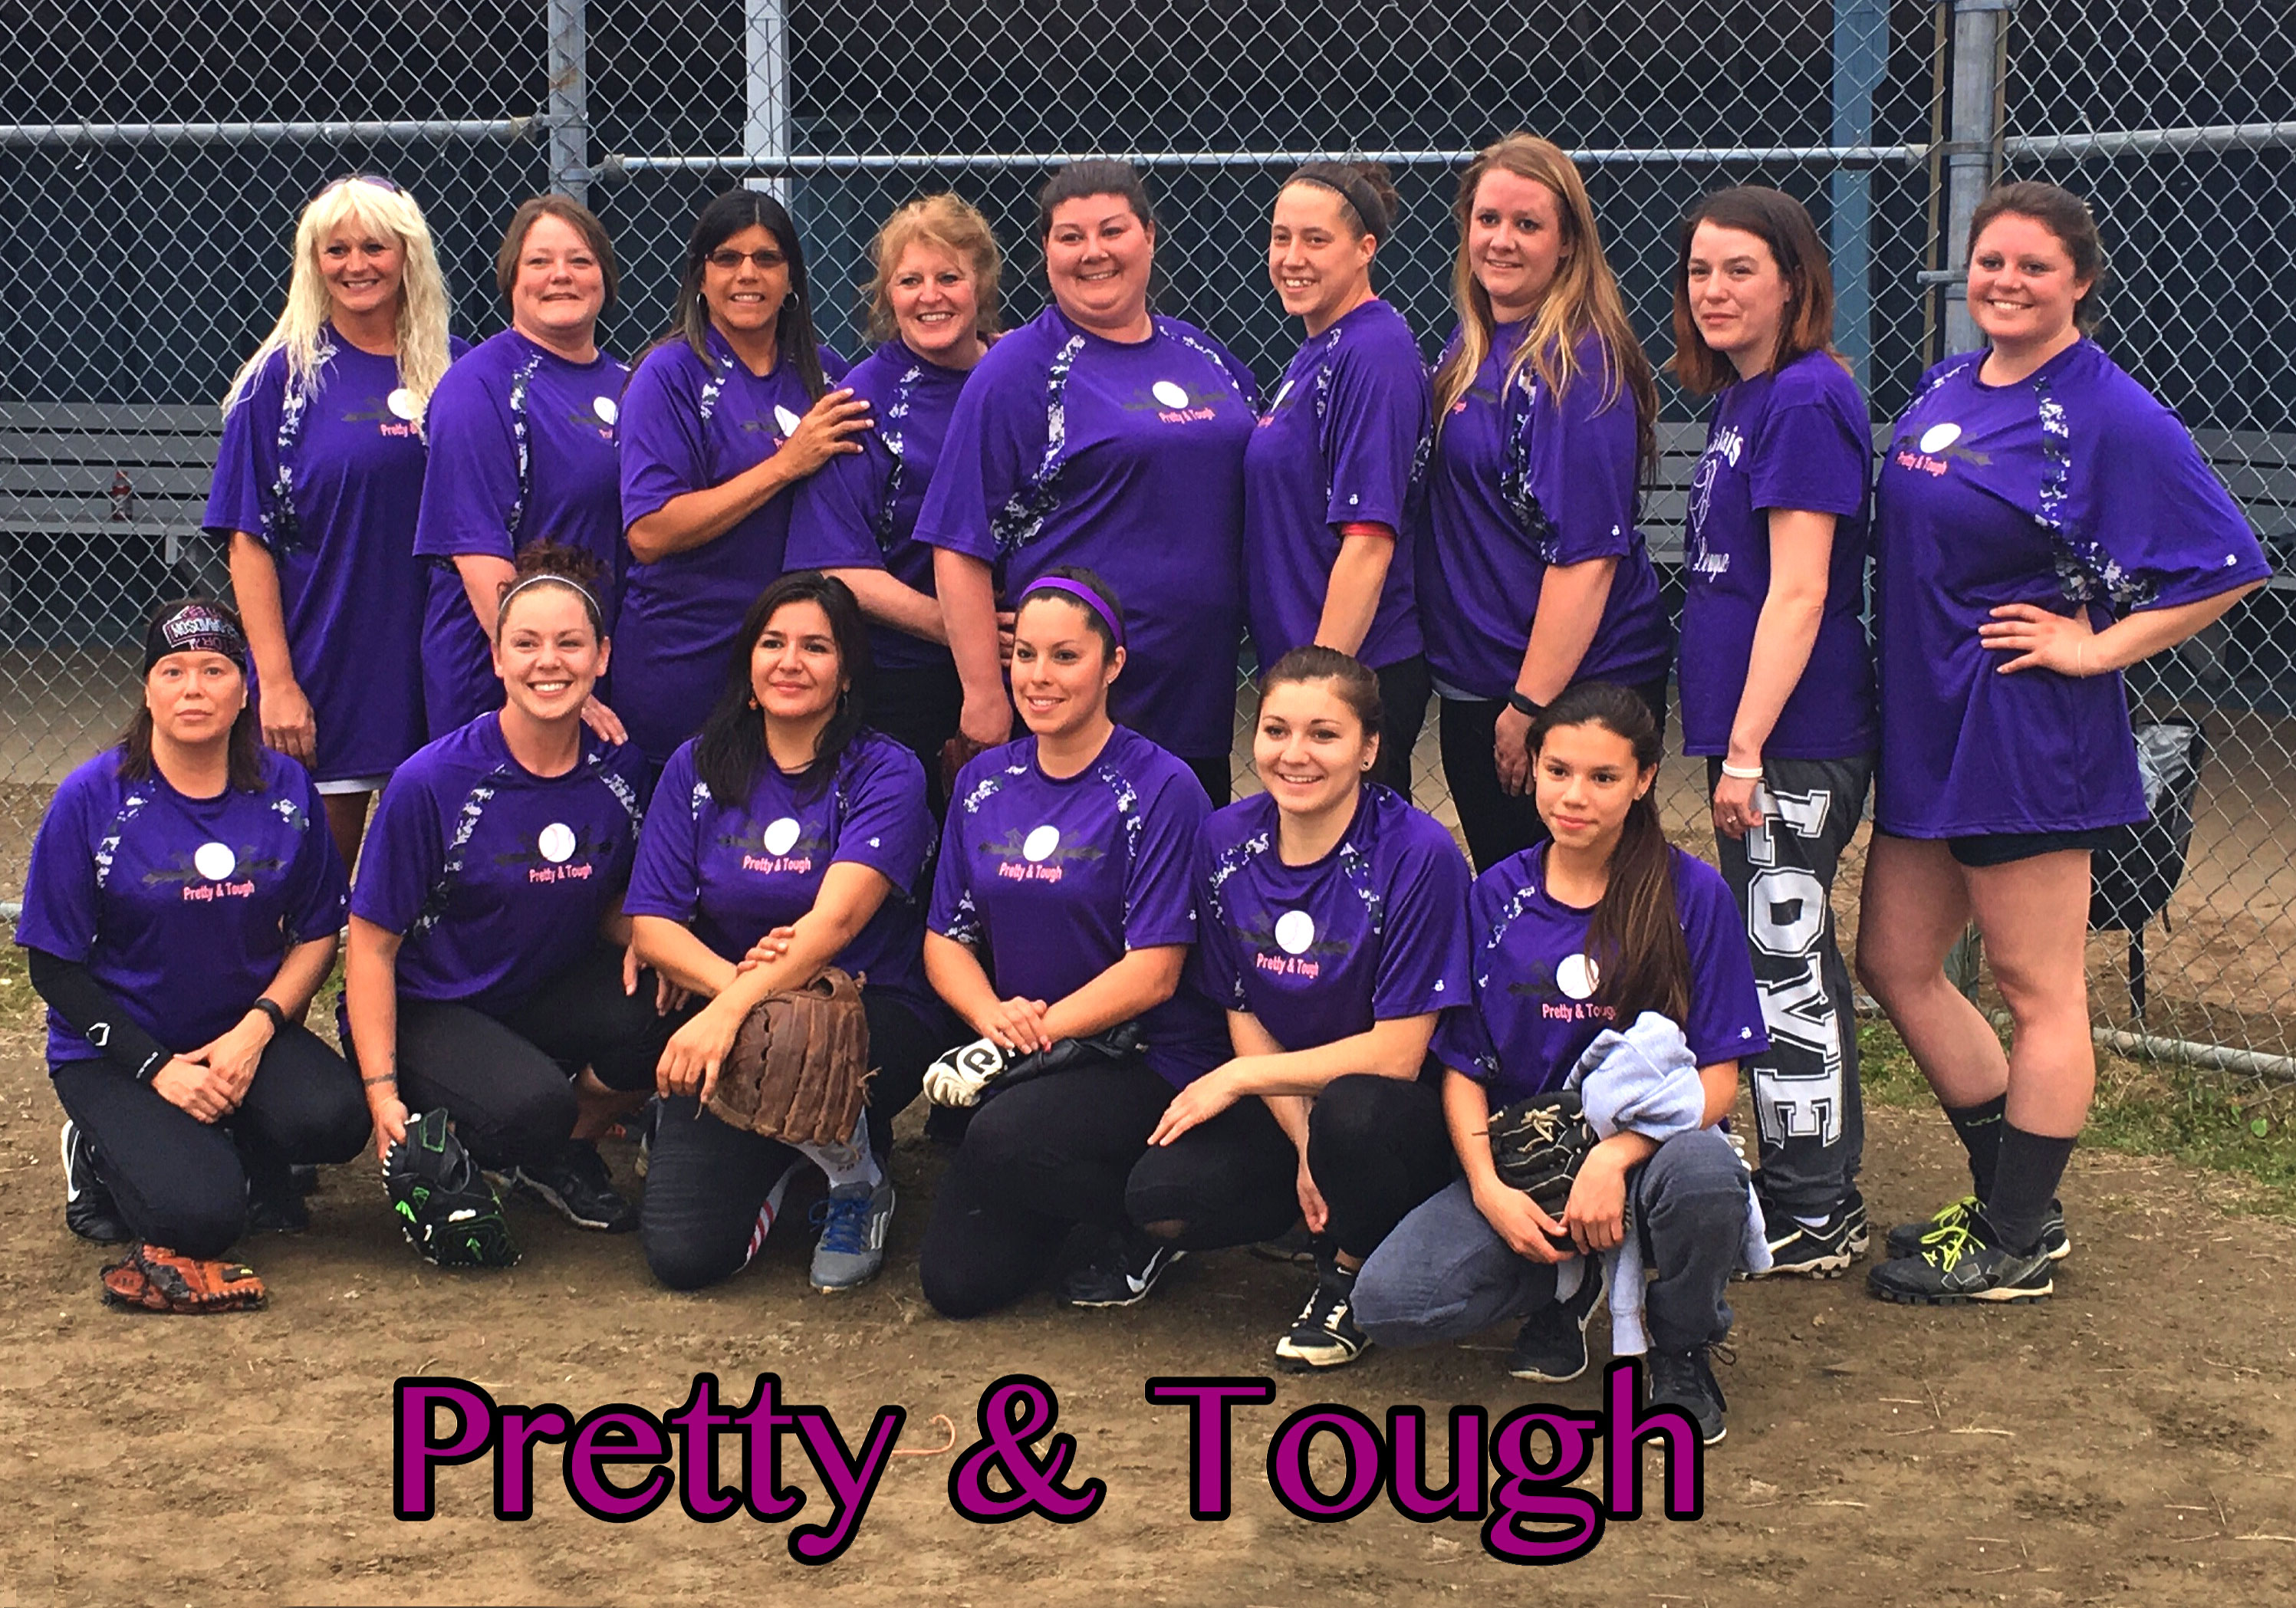 Pretty & Tough Softball in custom softball jerseys from TeamSportswear